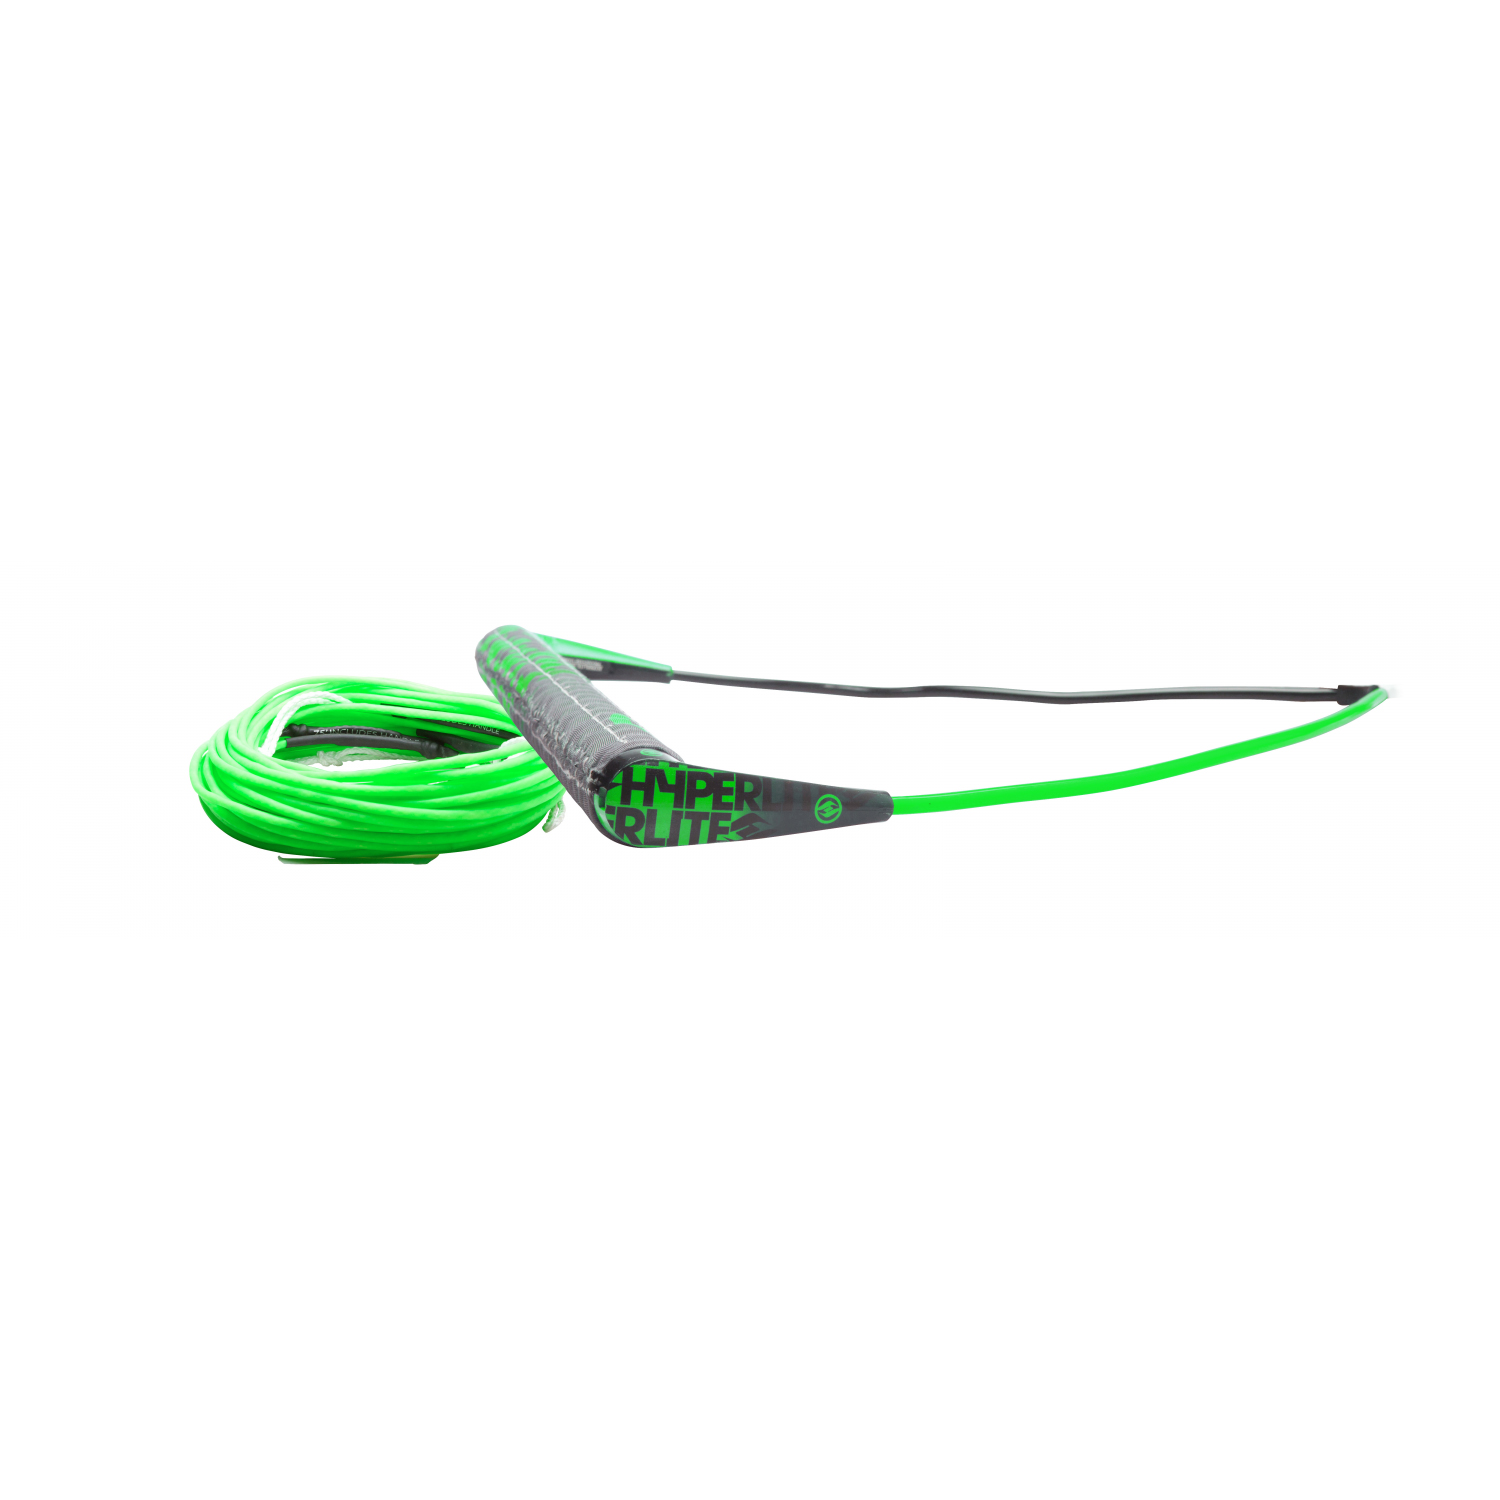 Hyperlite 2018 Team Handle w  A-Line (Green) Wakeboard Rope & Handle Combo by